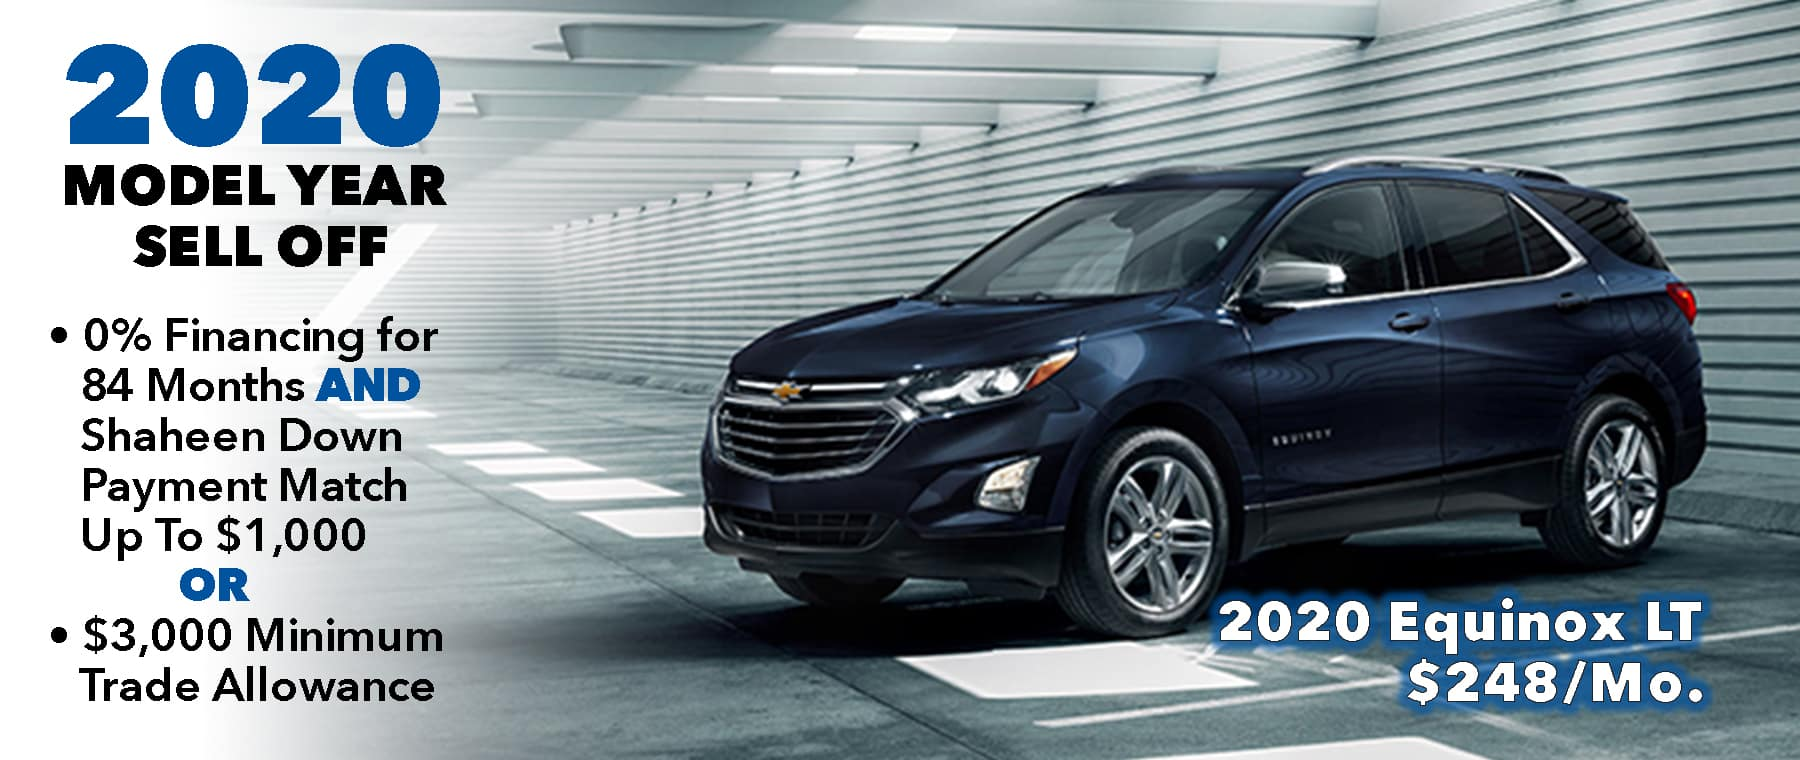 0% @ 84mo. Available On 2020 Models. Buy 2020 Equinox for $248/mo*